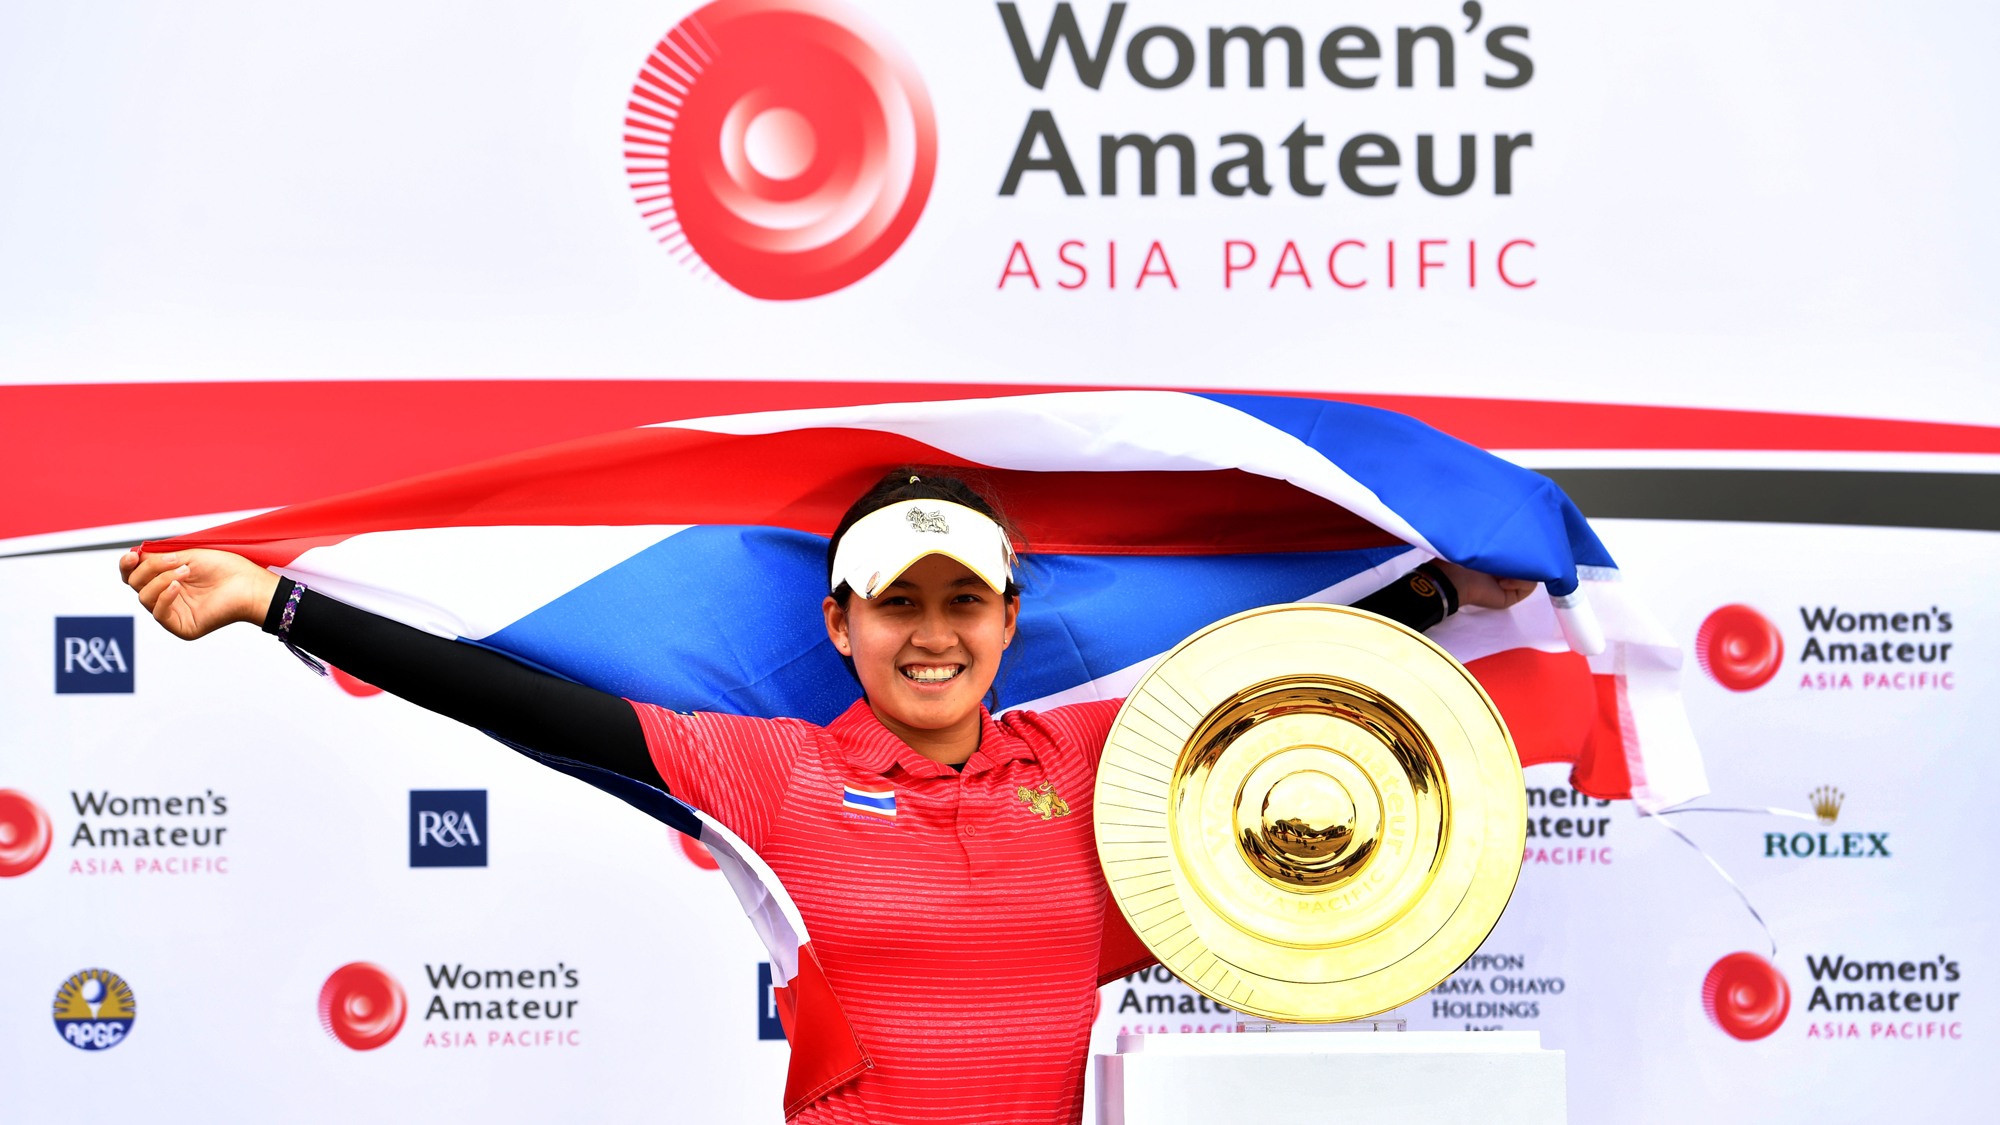 2019 major boost for womens amateur asia pacific evian exemption